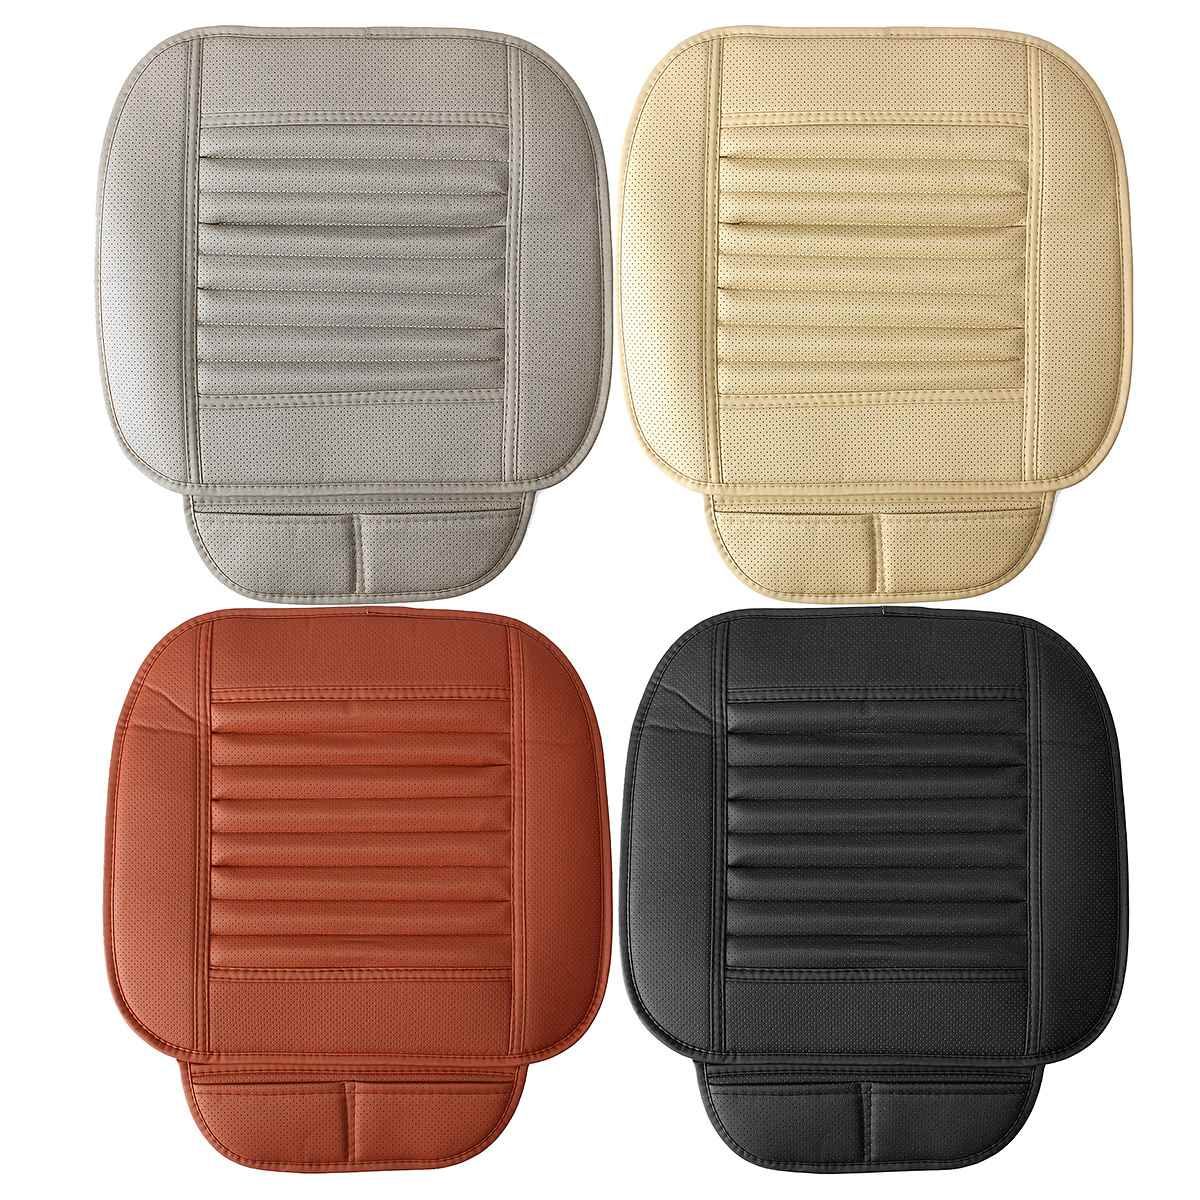 car seats protect mat cover car seat cover pad breathable cushion pu leather universal beige. Black Bedroom Furniture Sets. Home Design Ideas